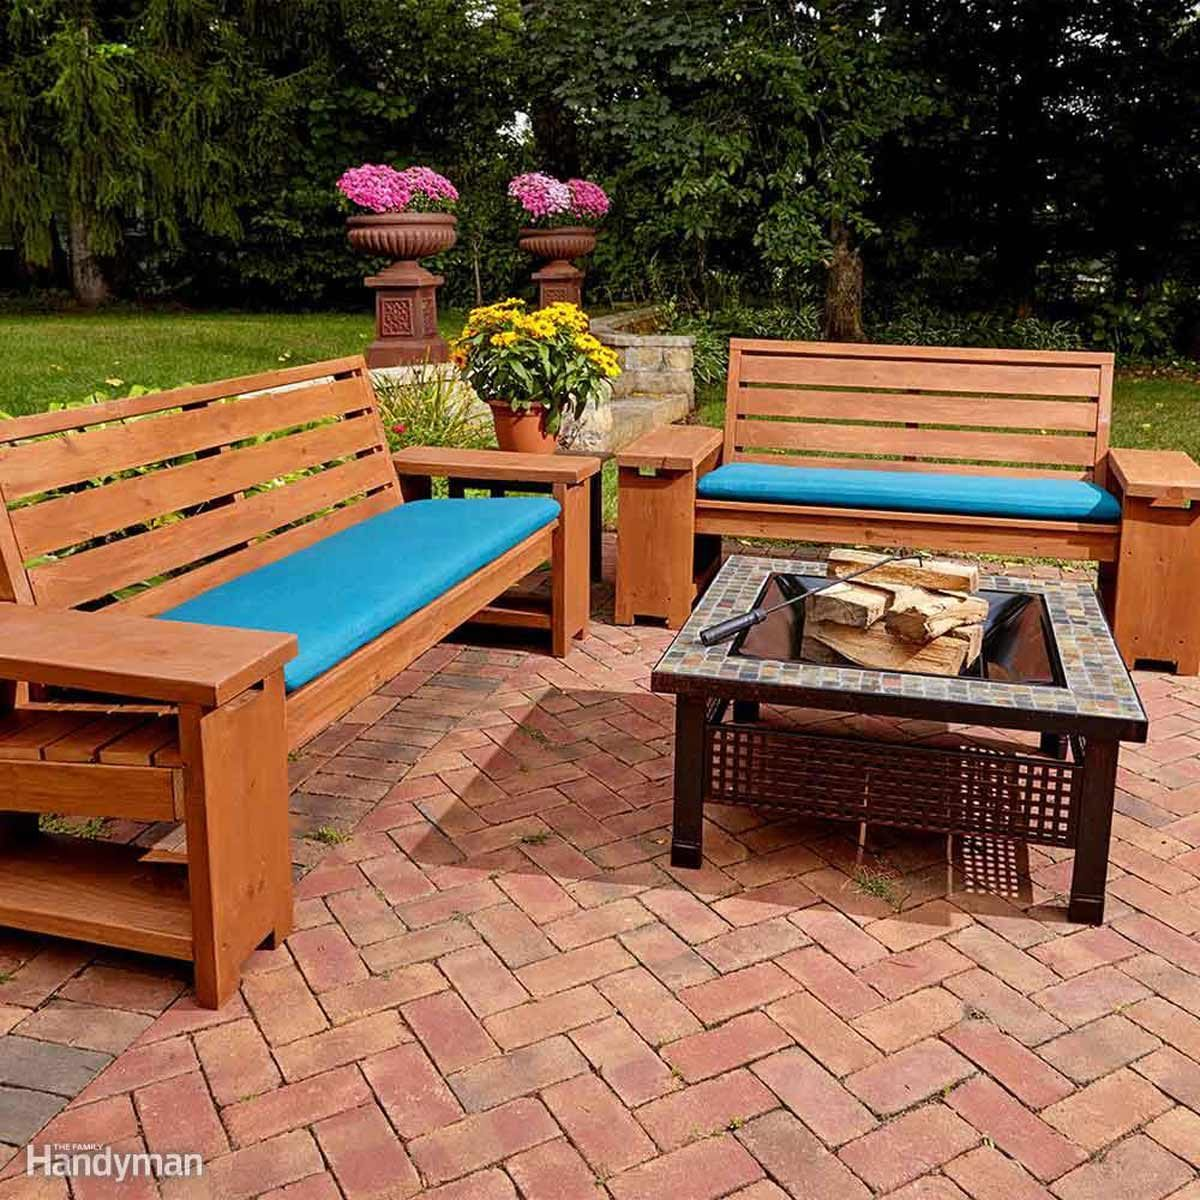 15 Awesome Plans For Diy Patio Furniture The Family Handyman